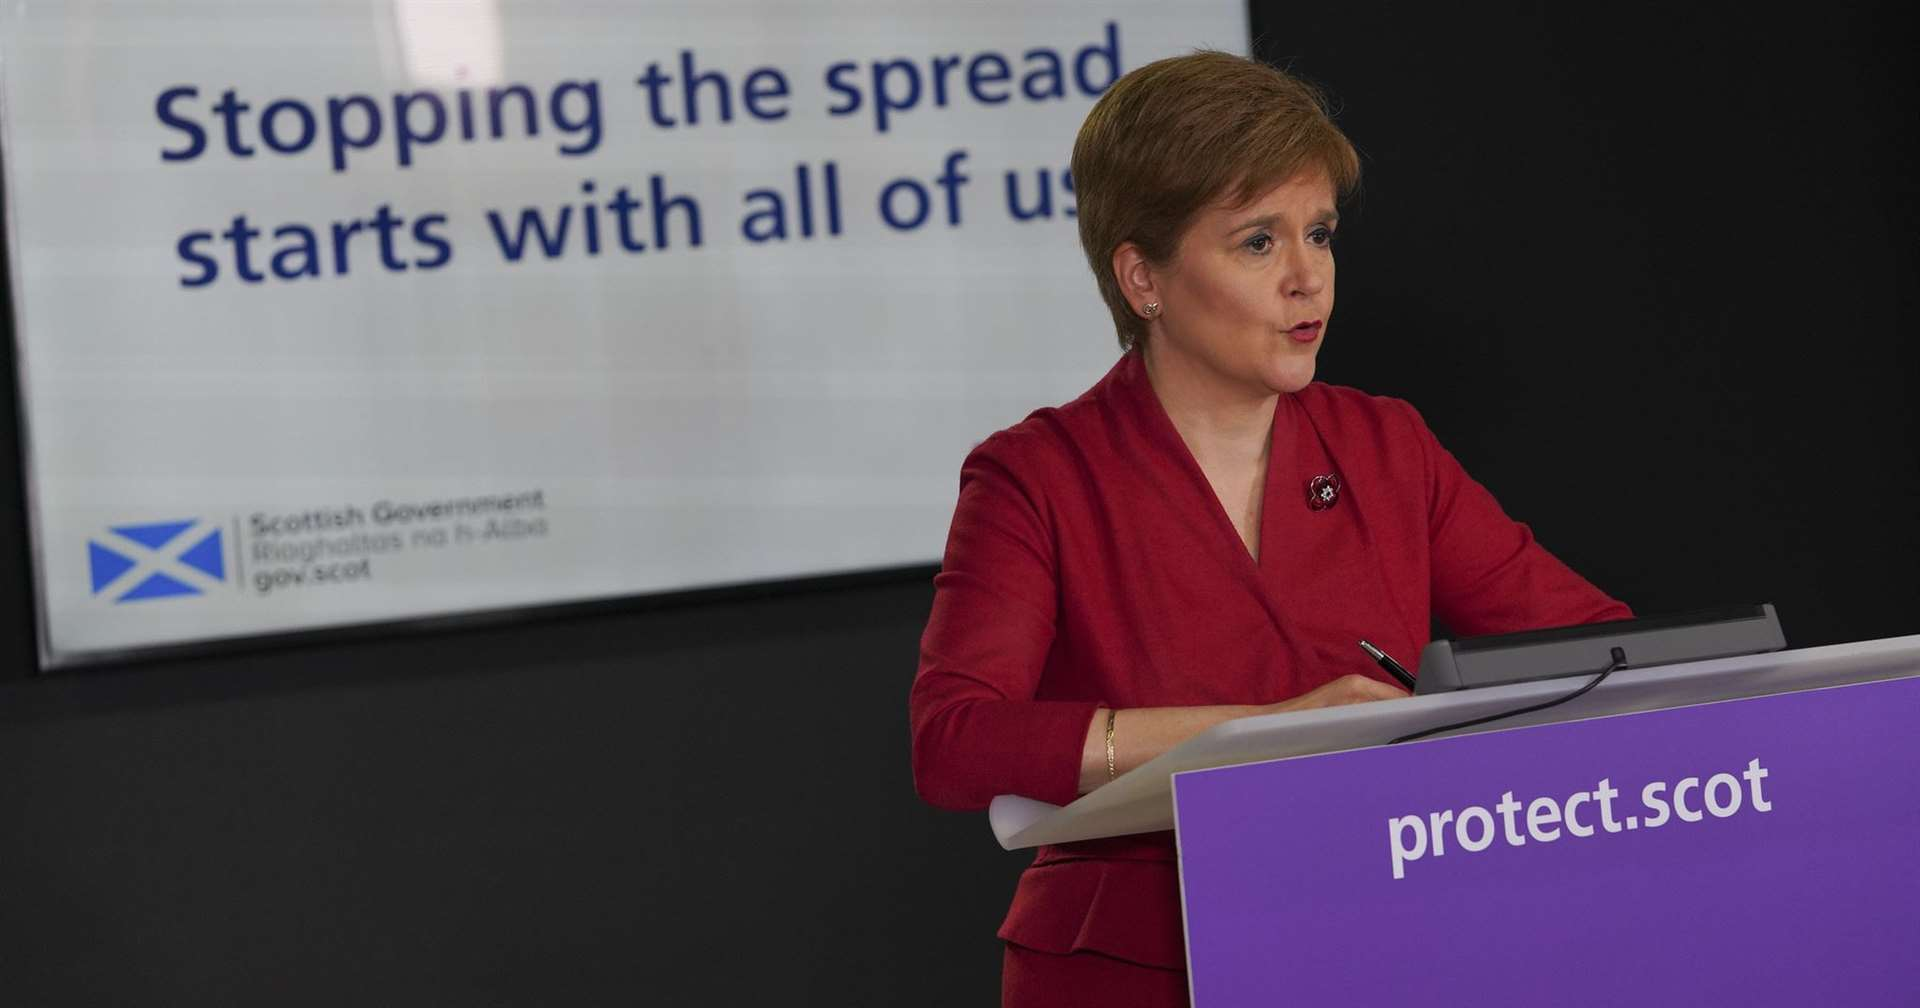 Travel between Scotland and England banned, Nicola Sturgeon has announced